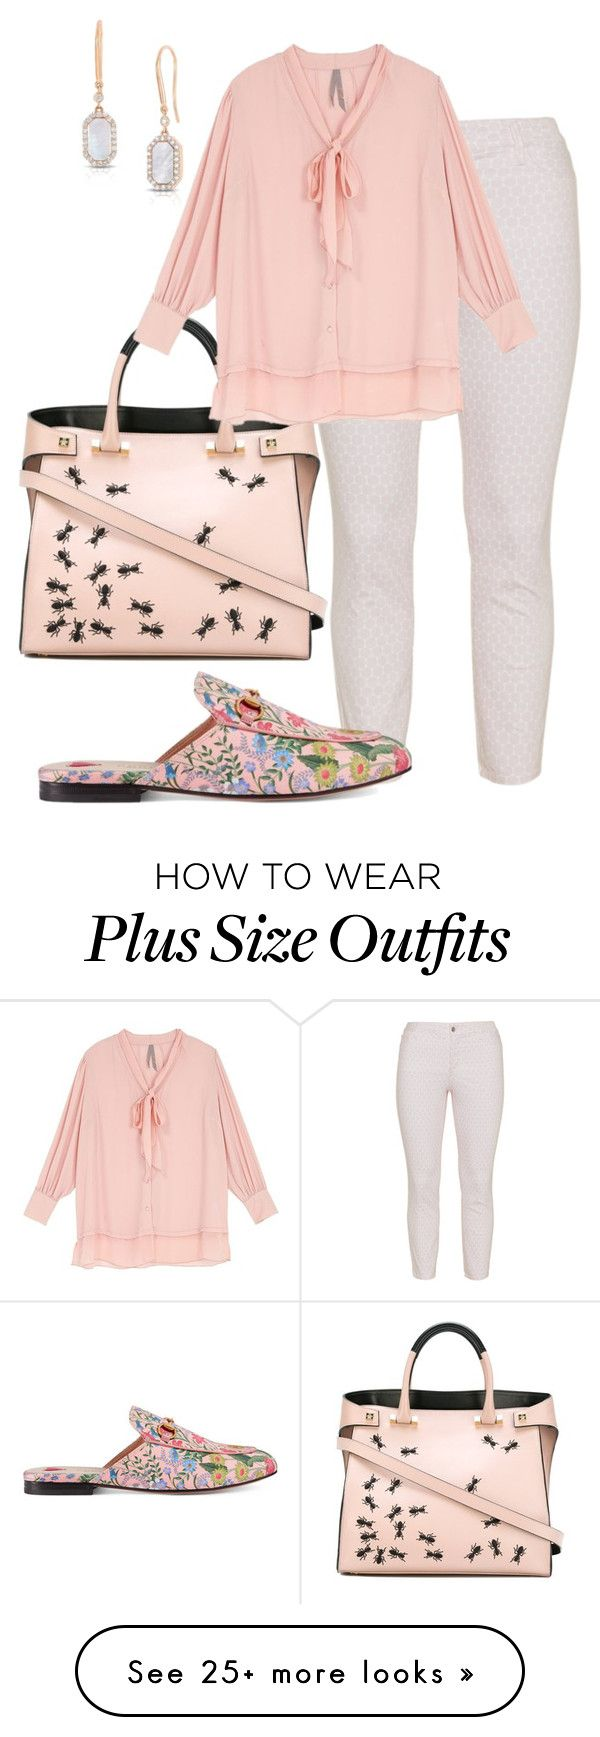 """plus size brittany"" by aleger-1 on Polyvore featuring Giancarlo Petriglia, NYDJ, Melissa McCarthy Seven7, Roberto Coin, Gucci and plus size clothing"